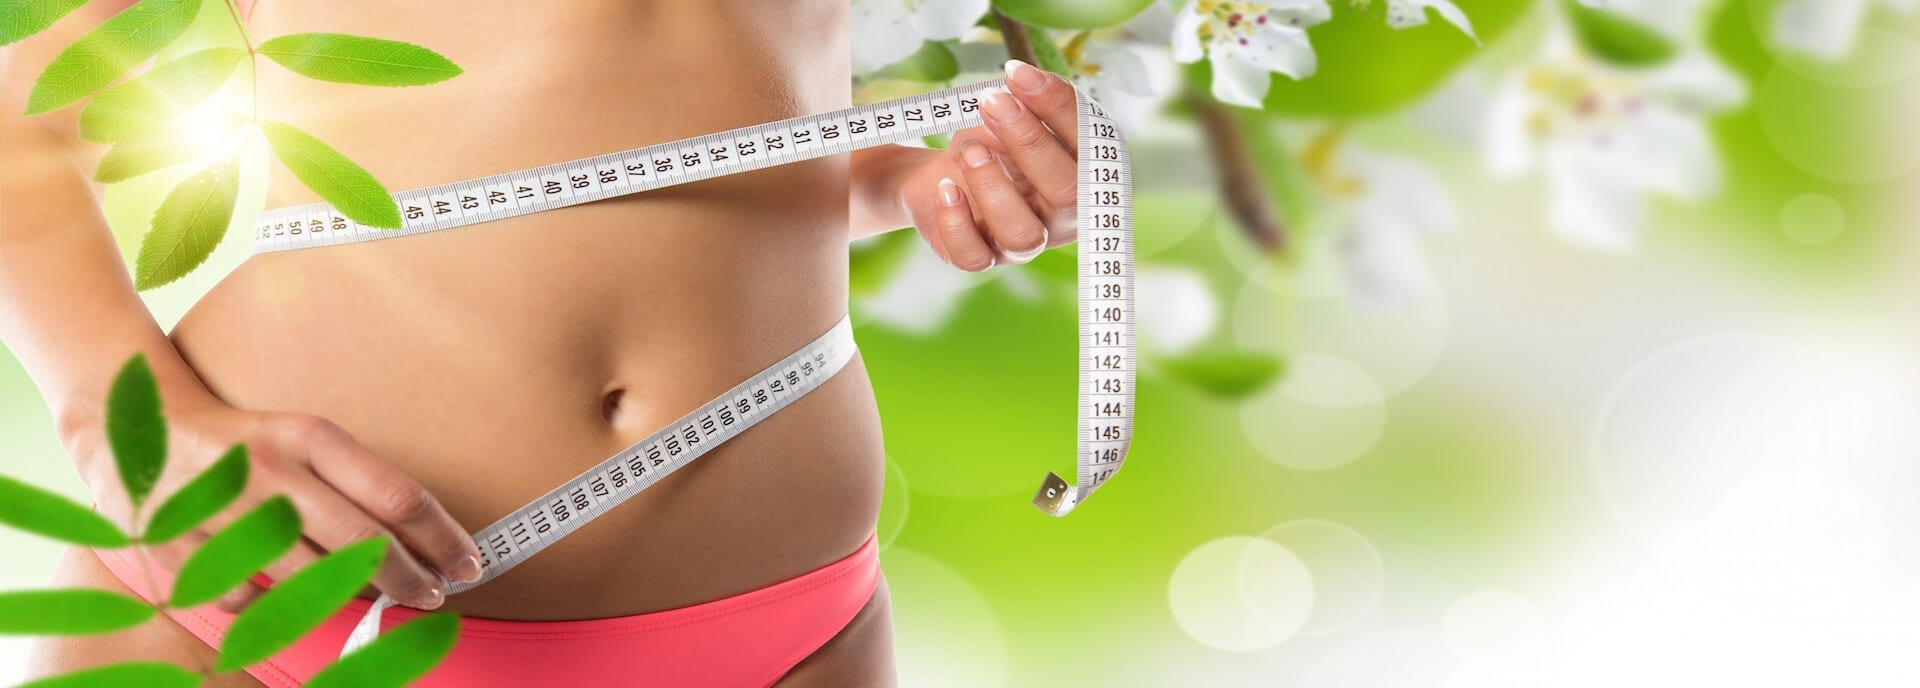 GetNaturopathic Mesotherapy & Lipodissolve Healthy Weight Loss, Body Sculpting & Cellulite Dr. Jiwani